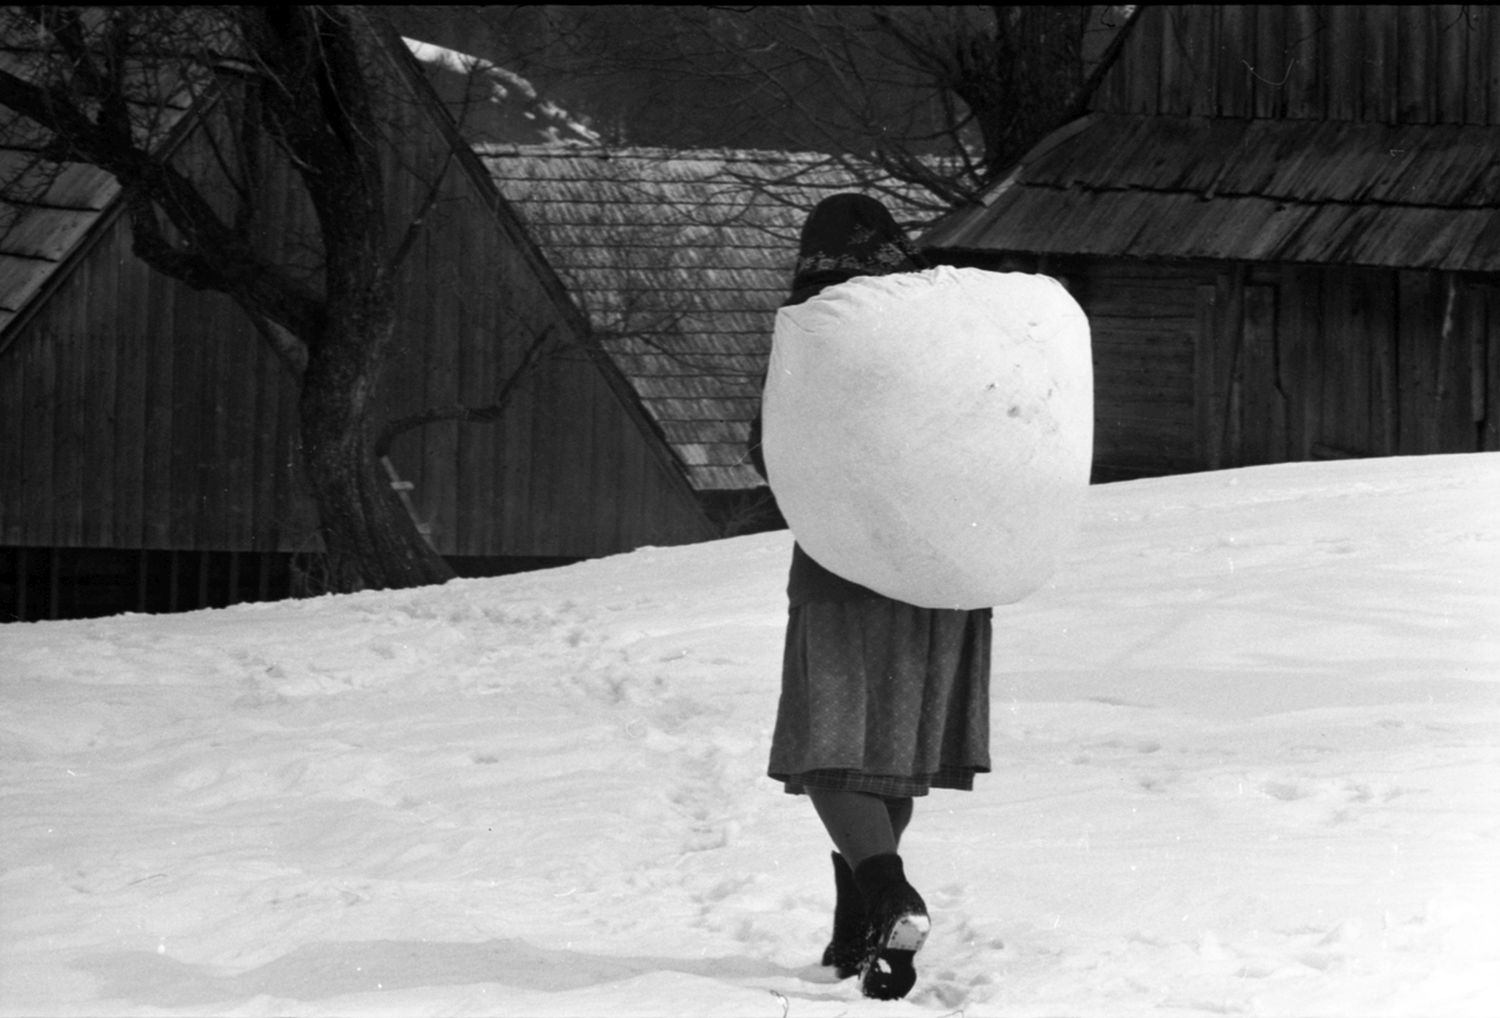 Péter Korniss: Woman Carrying Burden in the Snow